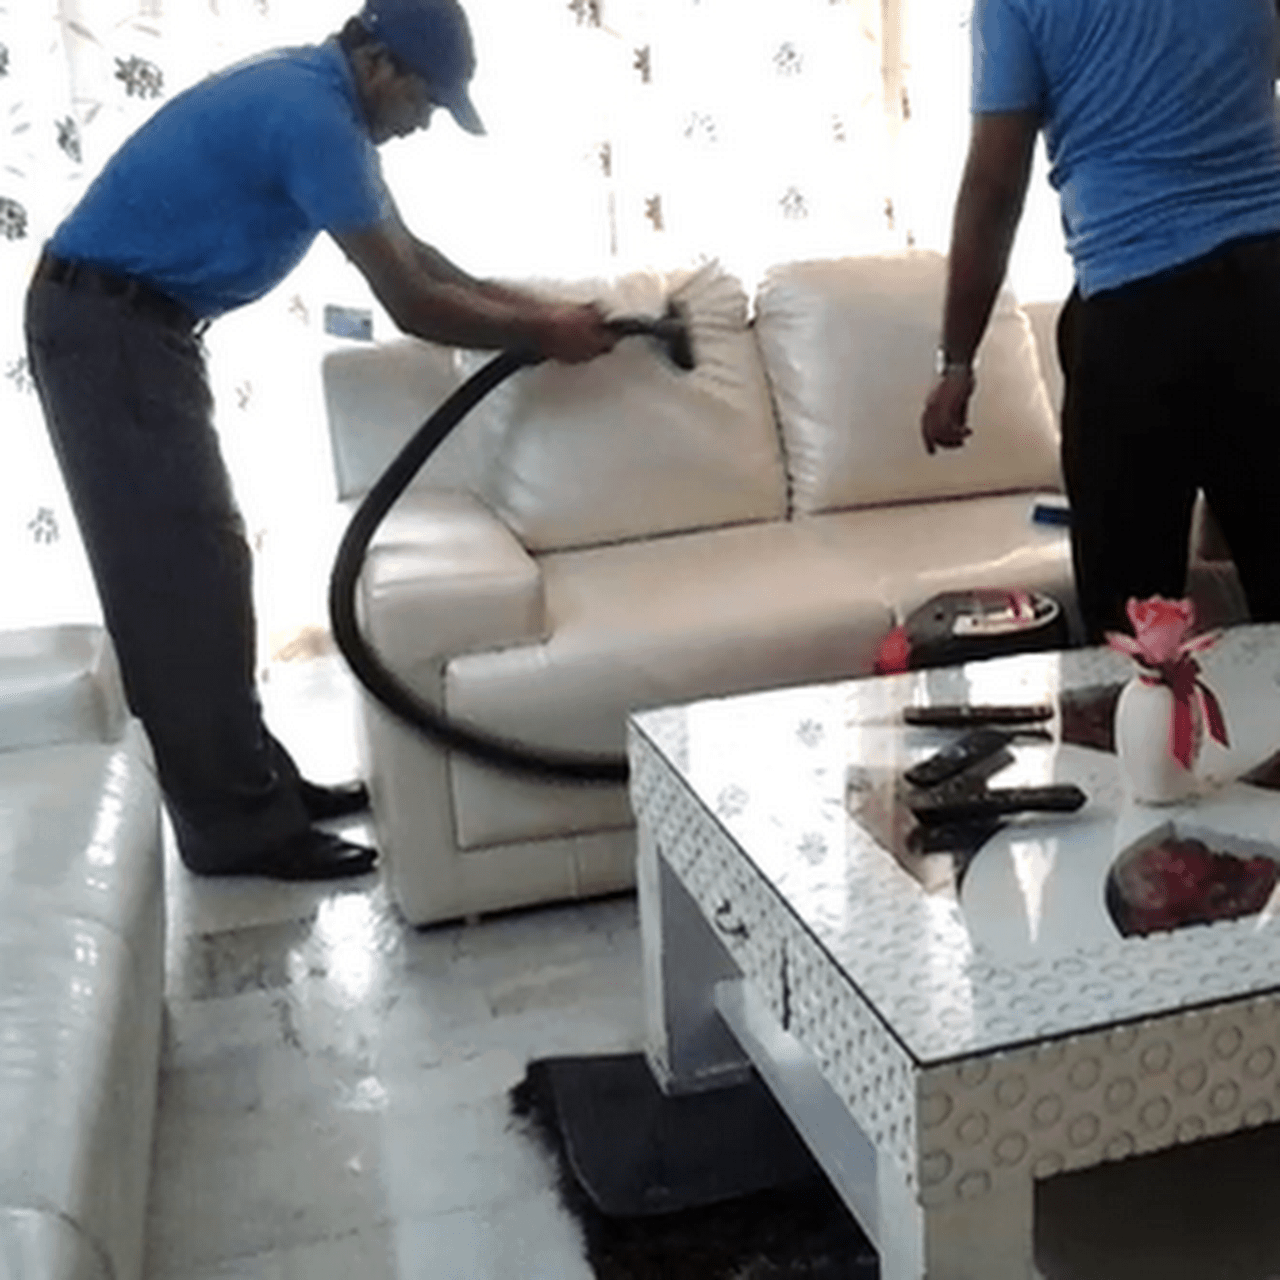 Sofa Cleaning Montreal Sofa Cleaning Services Best Cleaning Services Montreal